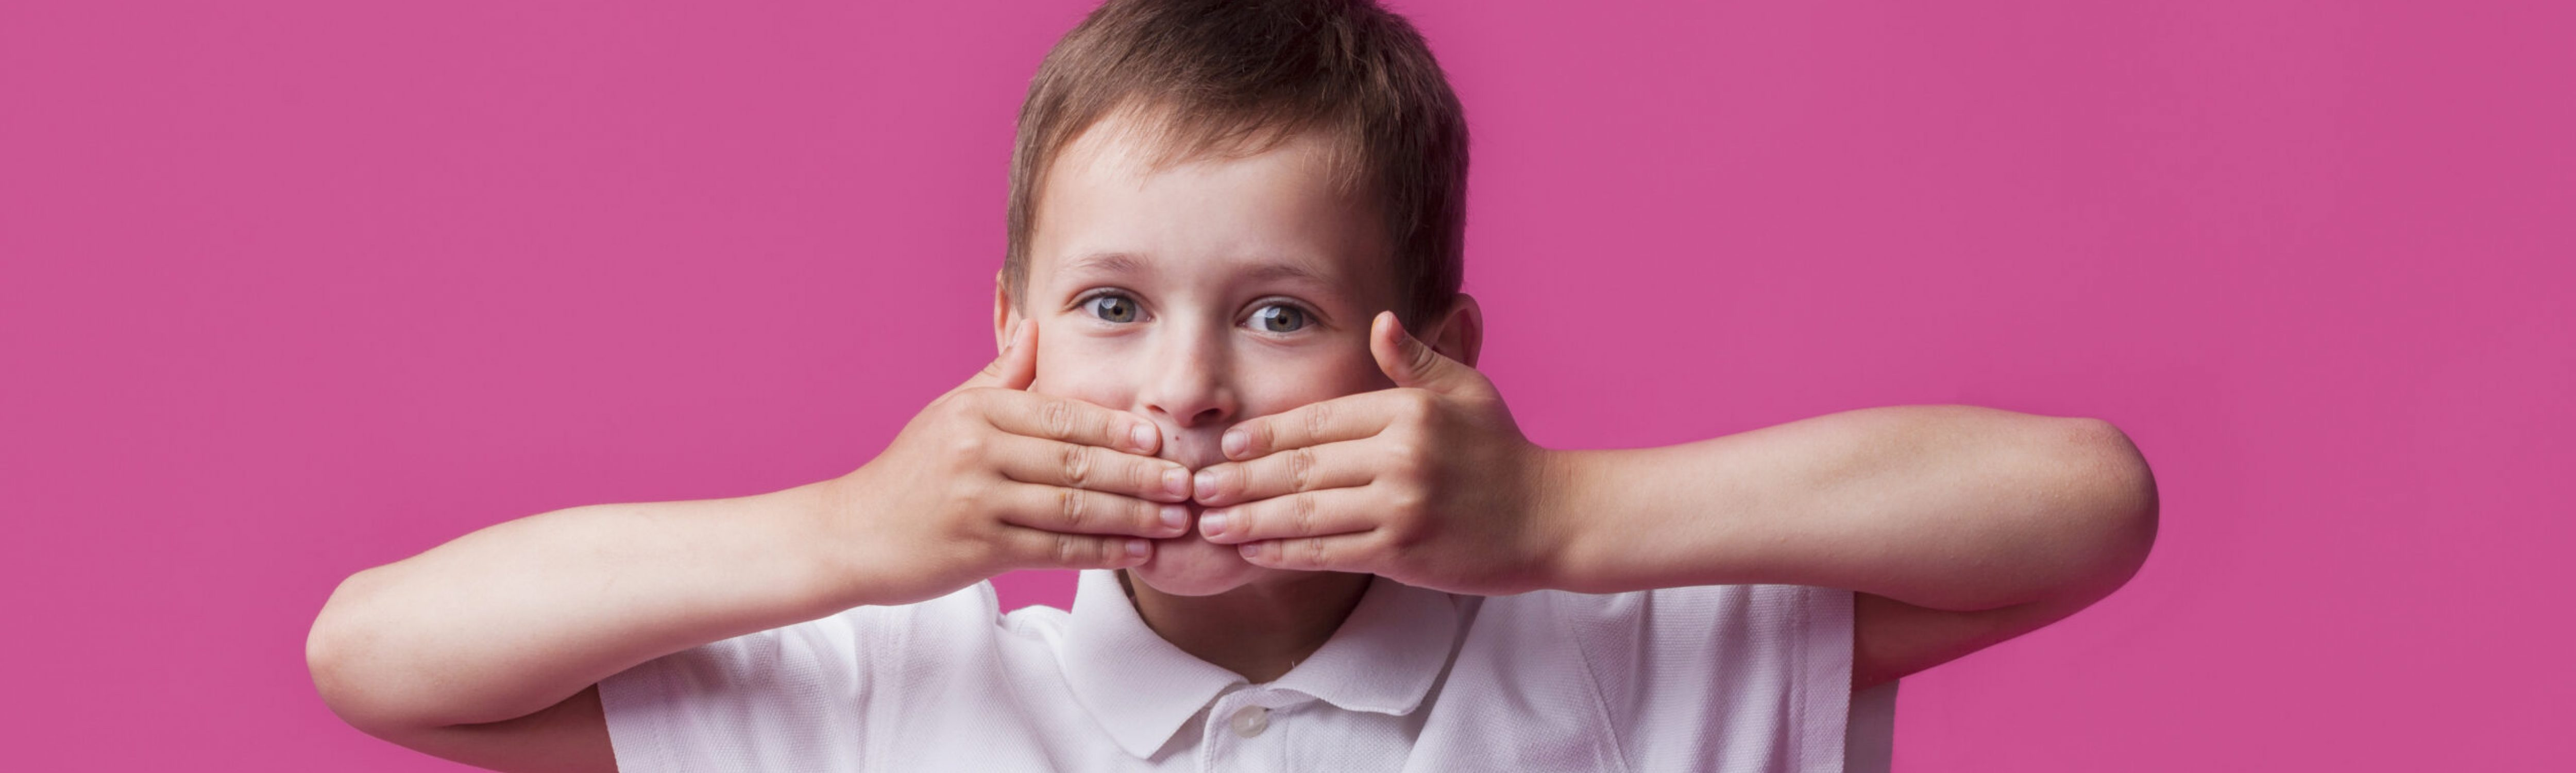 portrait-of-innocent-boy-covering-his-mouth-and-looking-at-camera-over-pink-wall-background